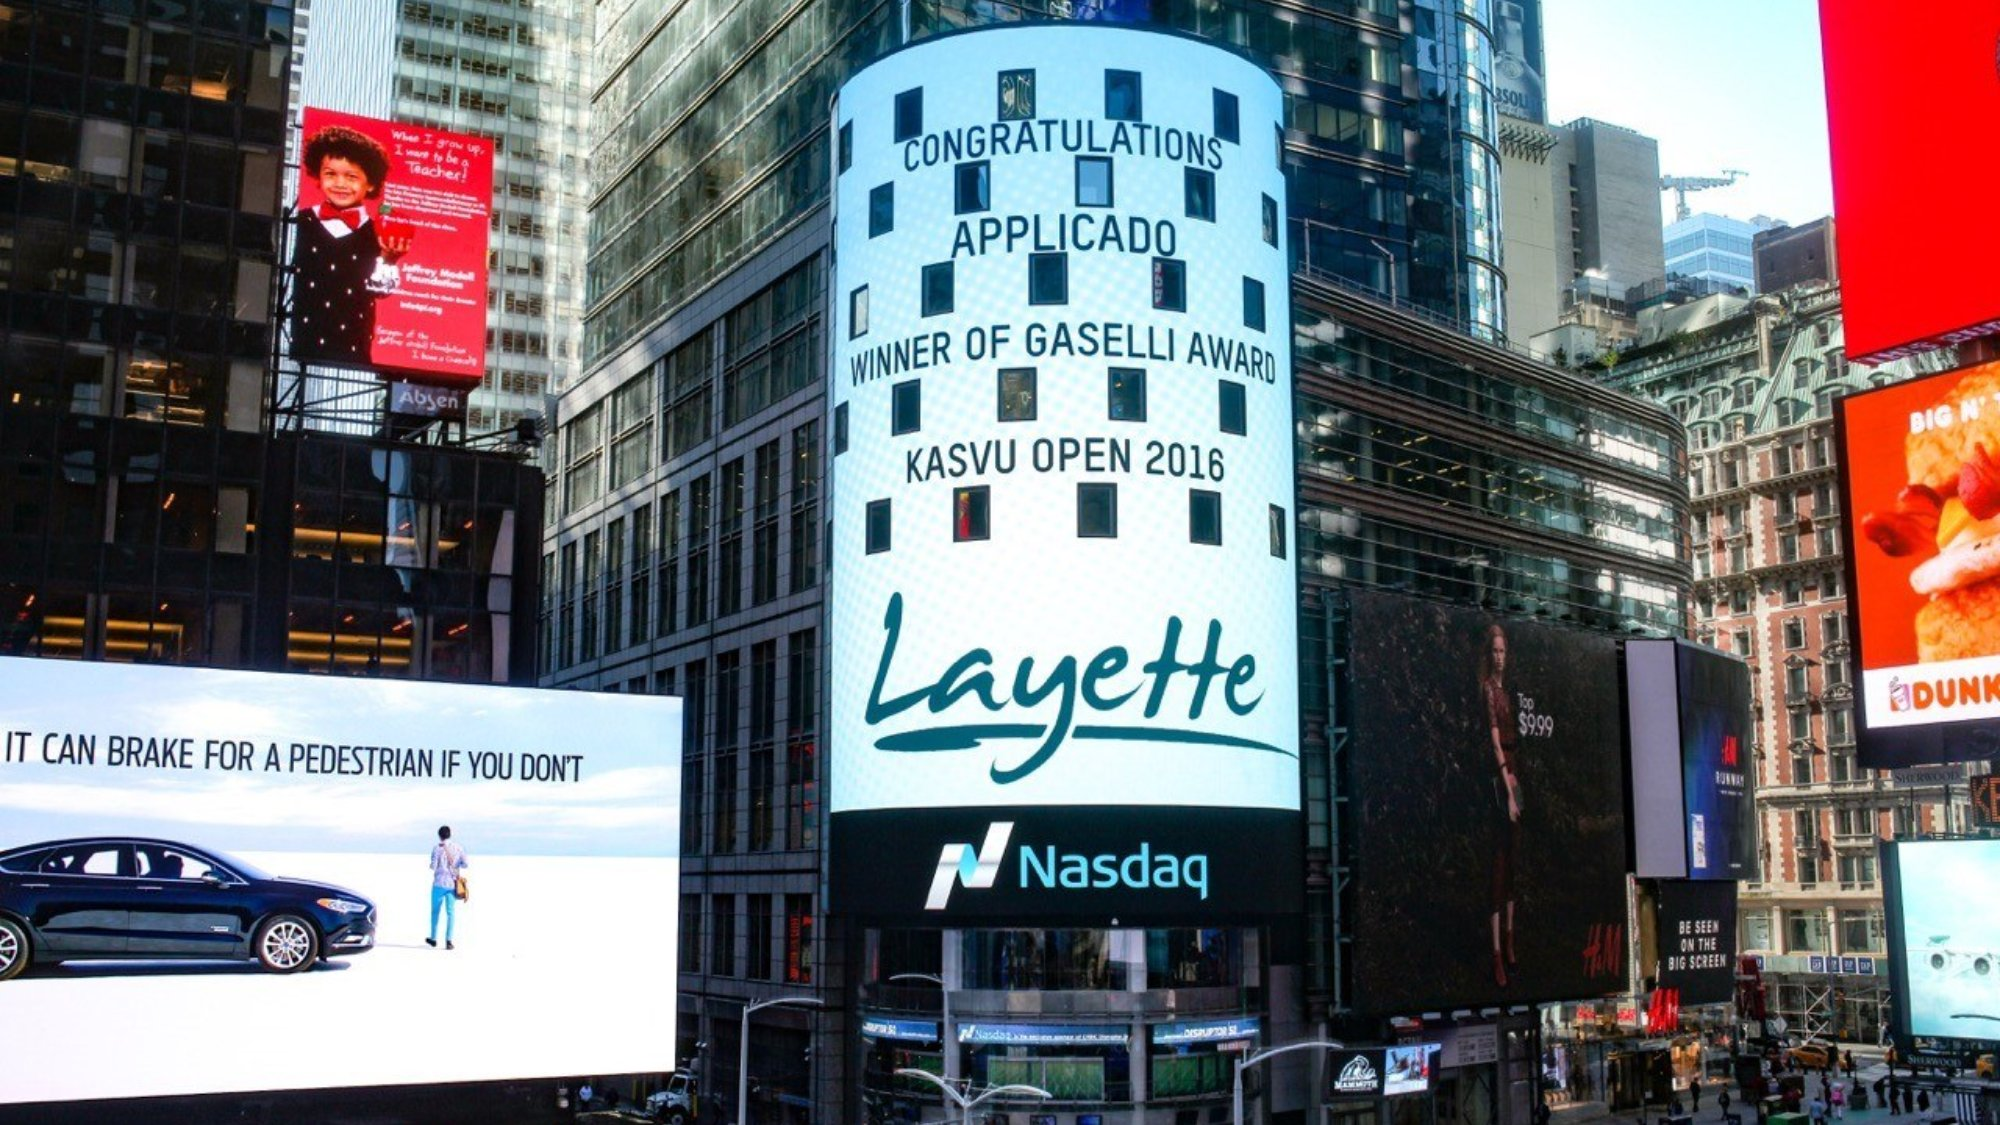 Welcome to Times Square, Layette!